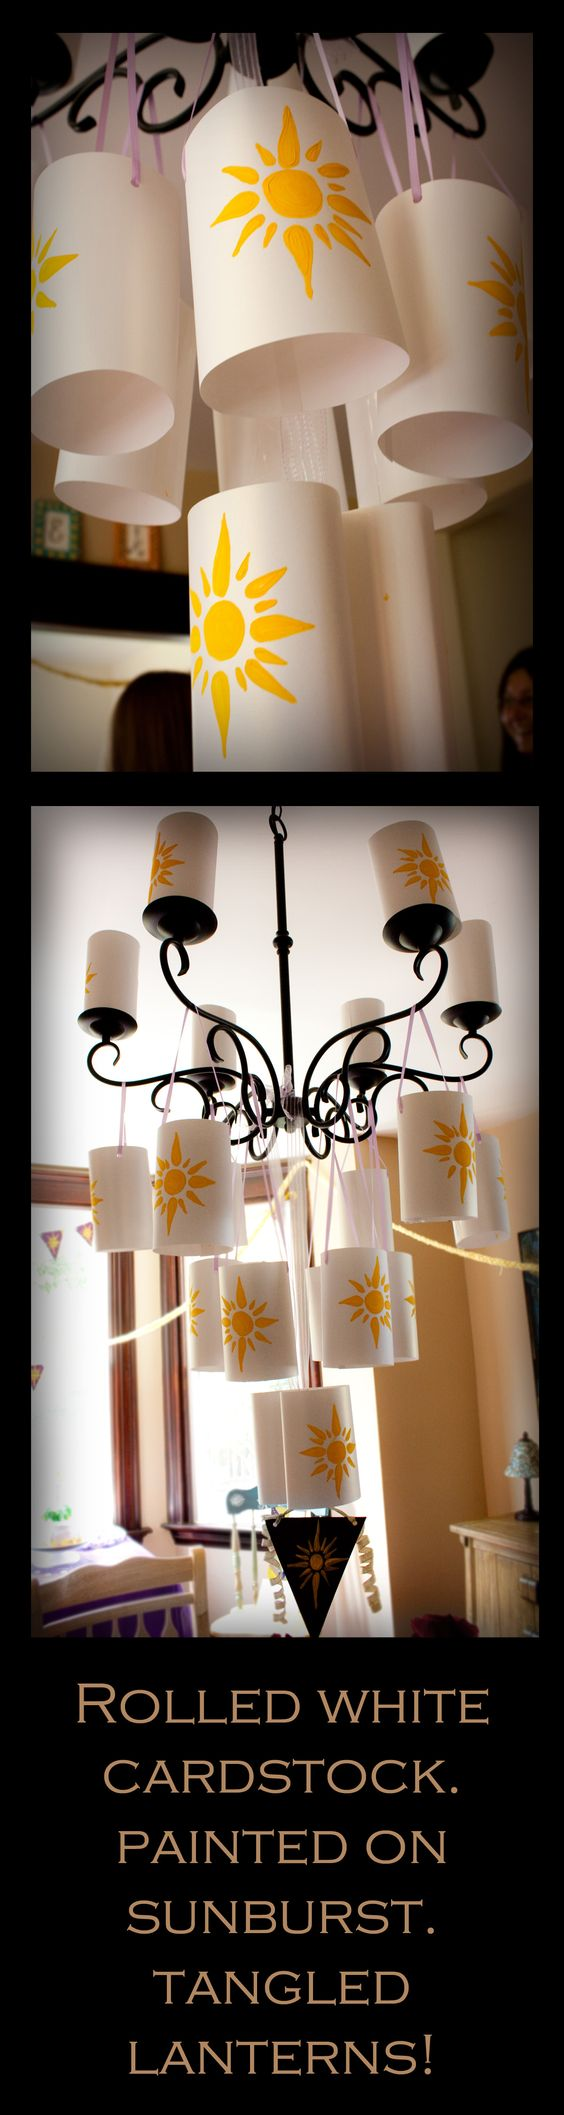 Easy tangled lanterns- maybe paint the sun image onto gold card and make smaller lanters to decorate around the backyard